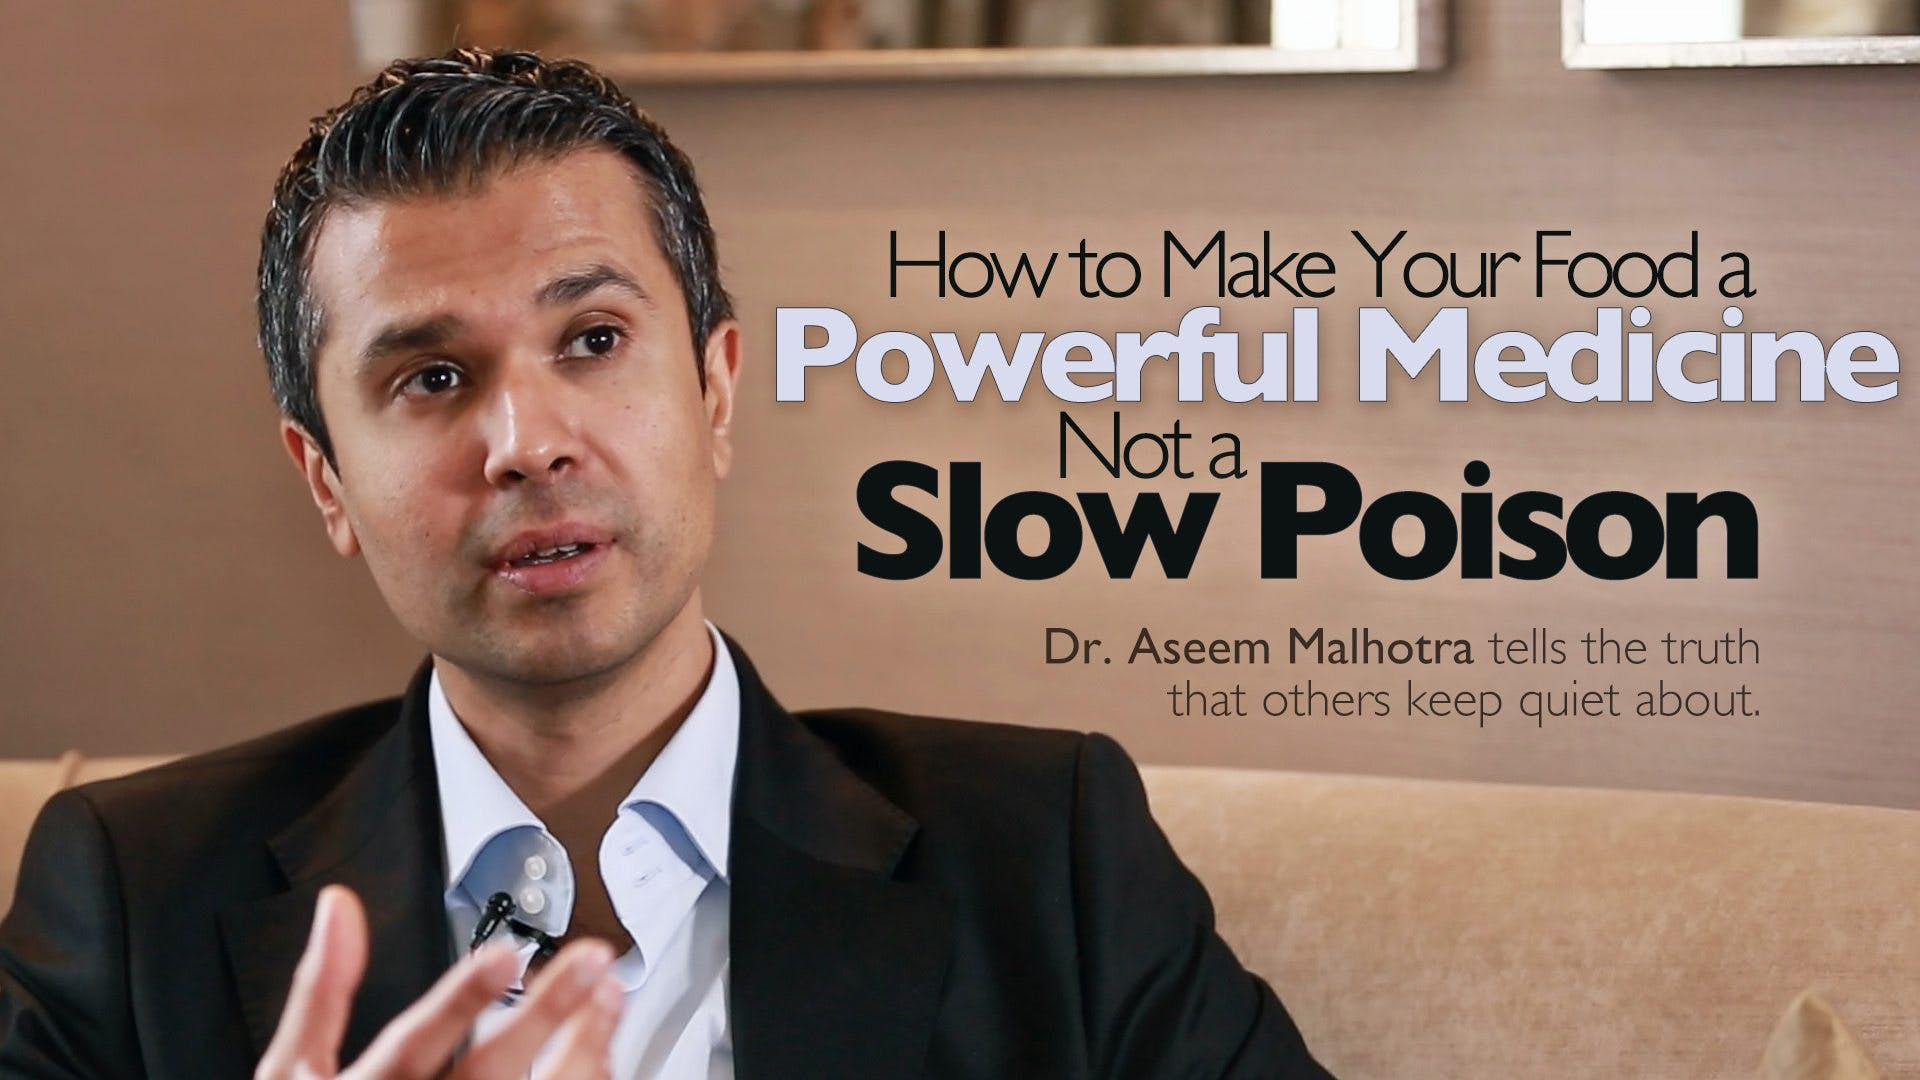 How to Make Your Food a Powerful Medicine, Not a Slow Poison – Dr. Aseem Malhotra